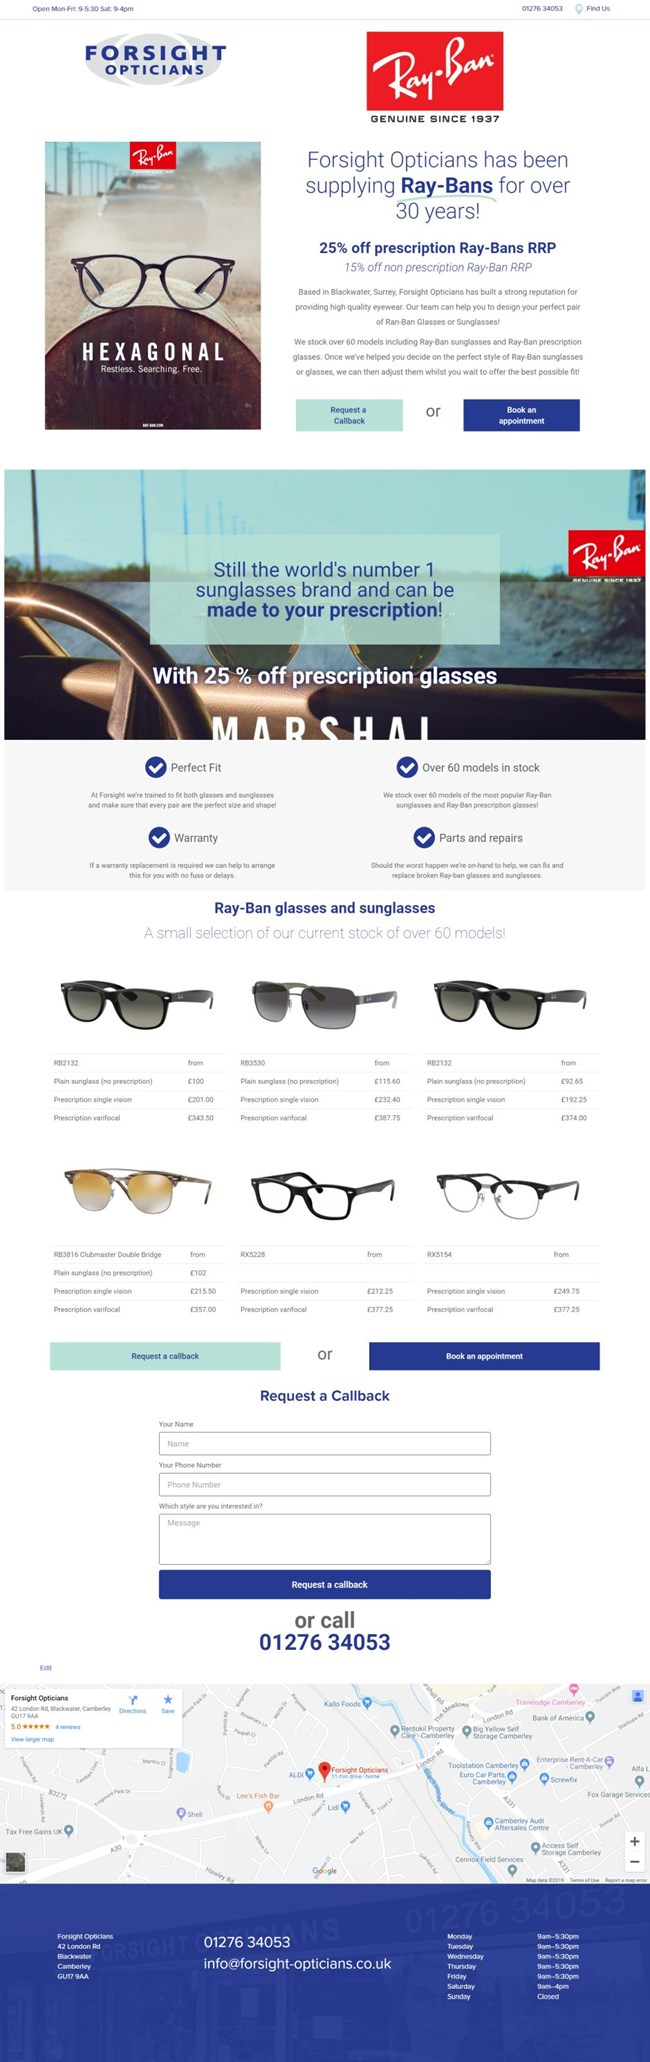 Forsight Opticians Wordpress Web Design SP004 Ray Ban Sunglasses